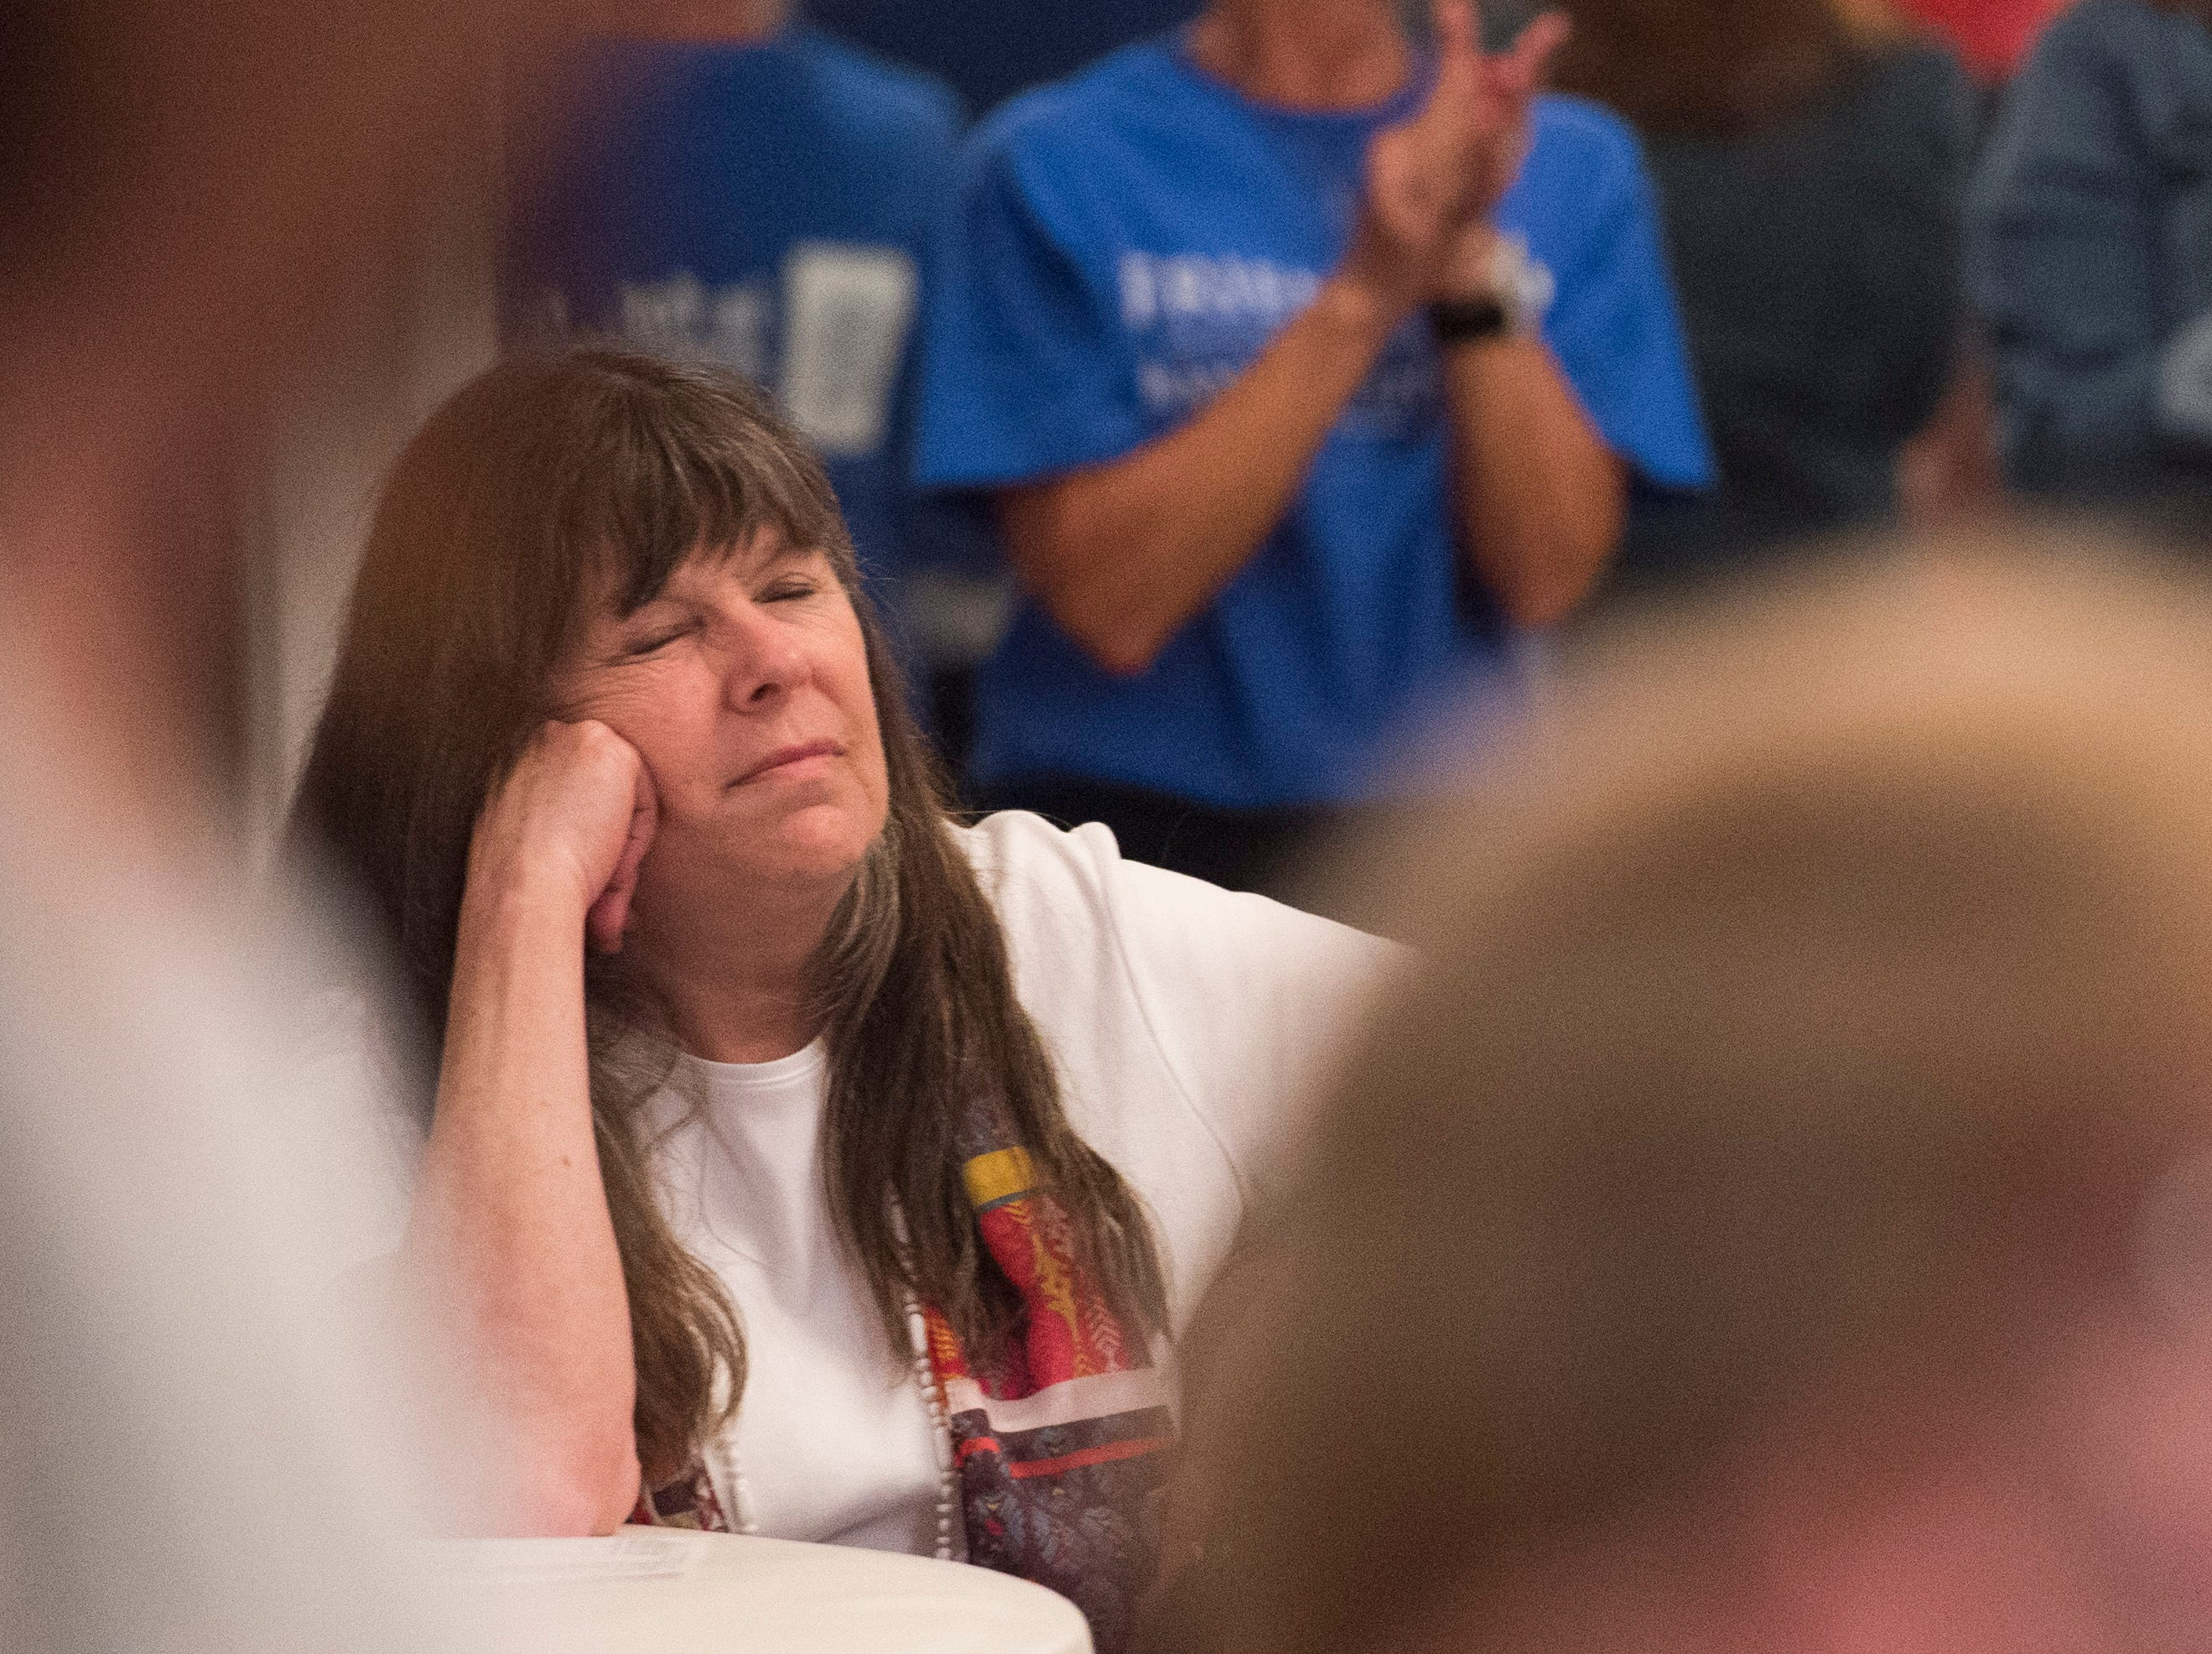 Mayoral candidate Connie Whitman closes her eyes as the crowd cheers for primary winner Mayor Lloyd Winnecke Tuesday, May 7, 2019.